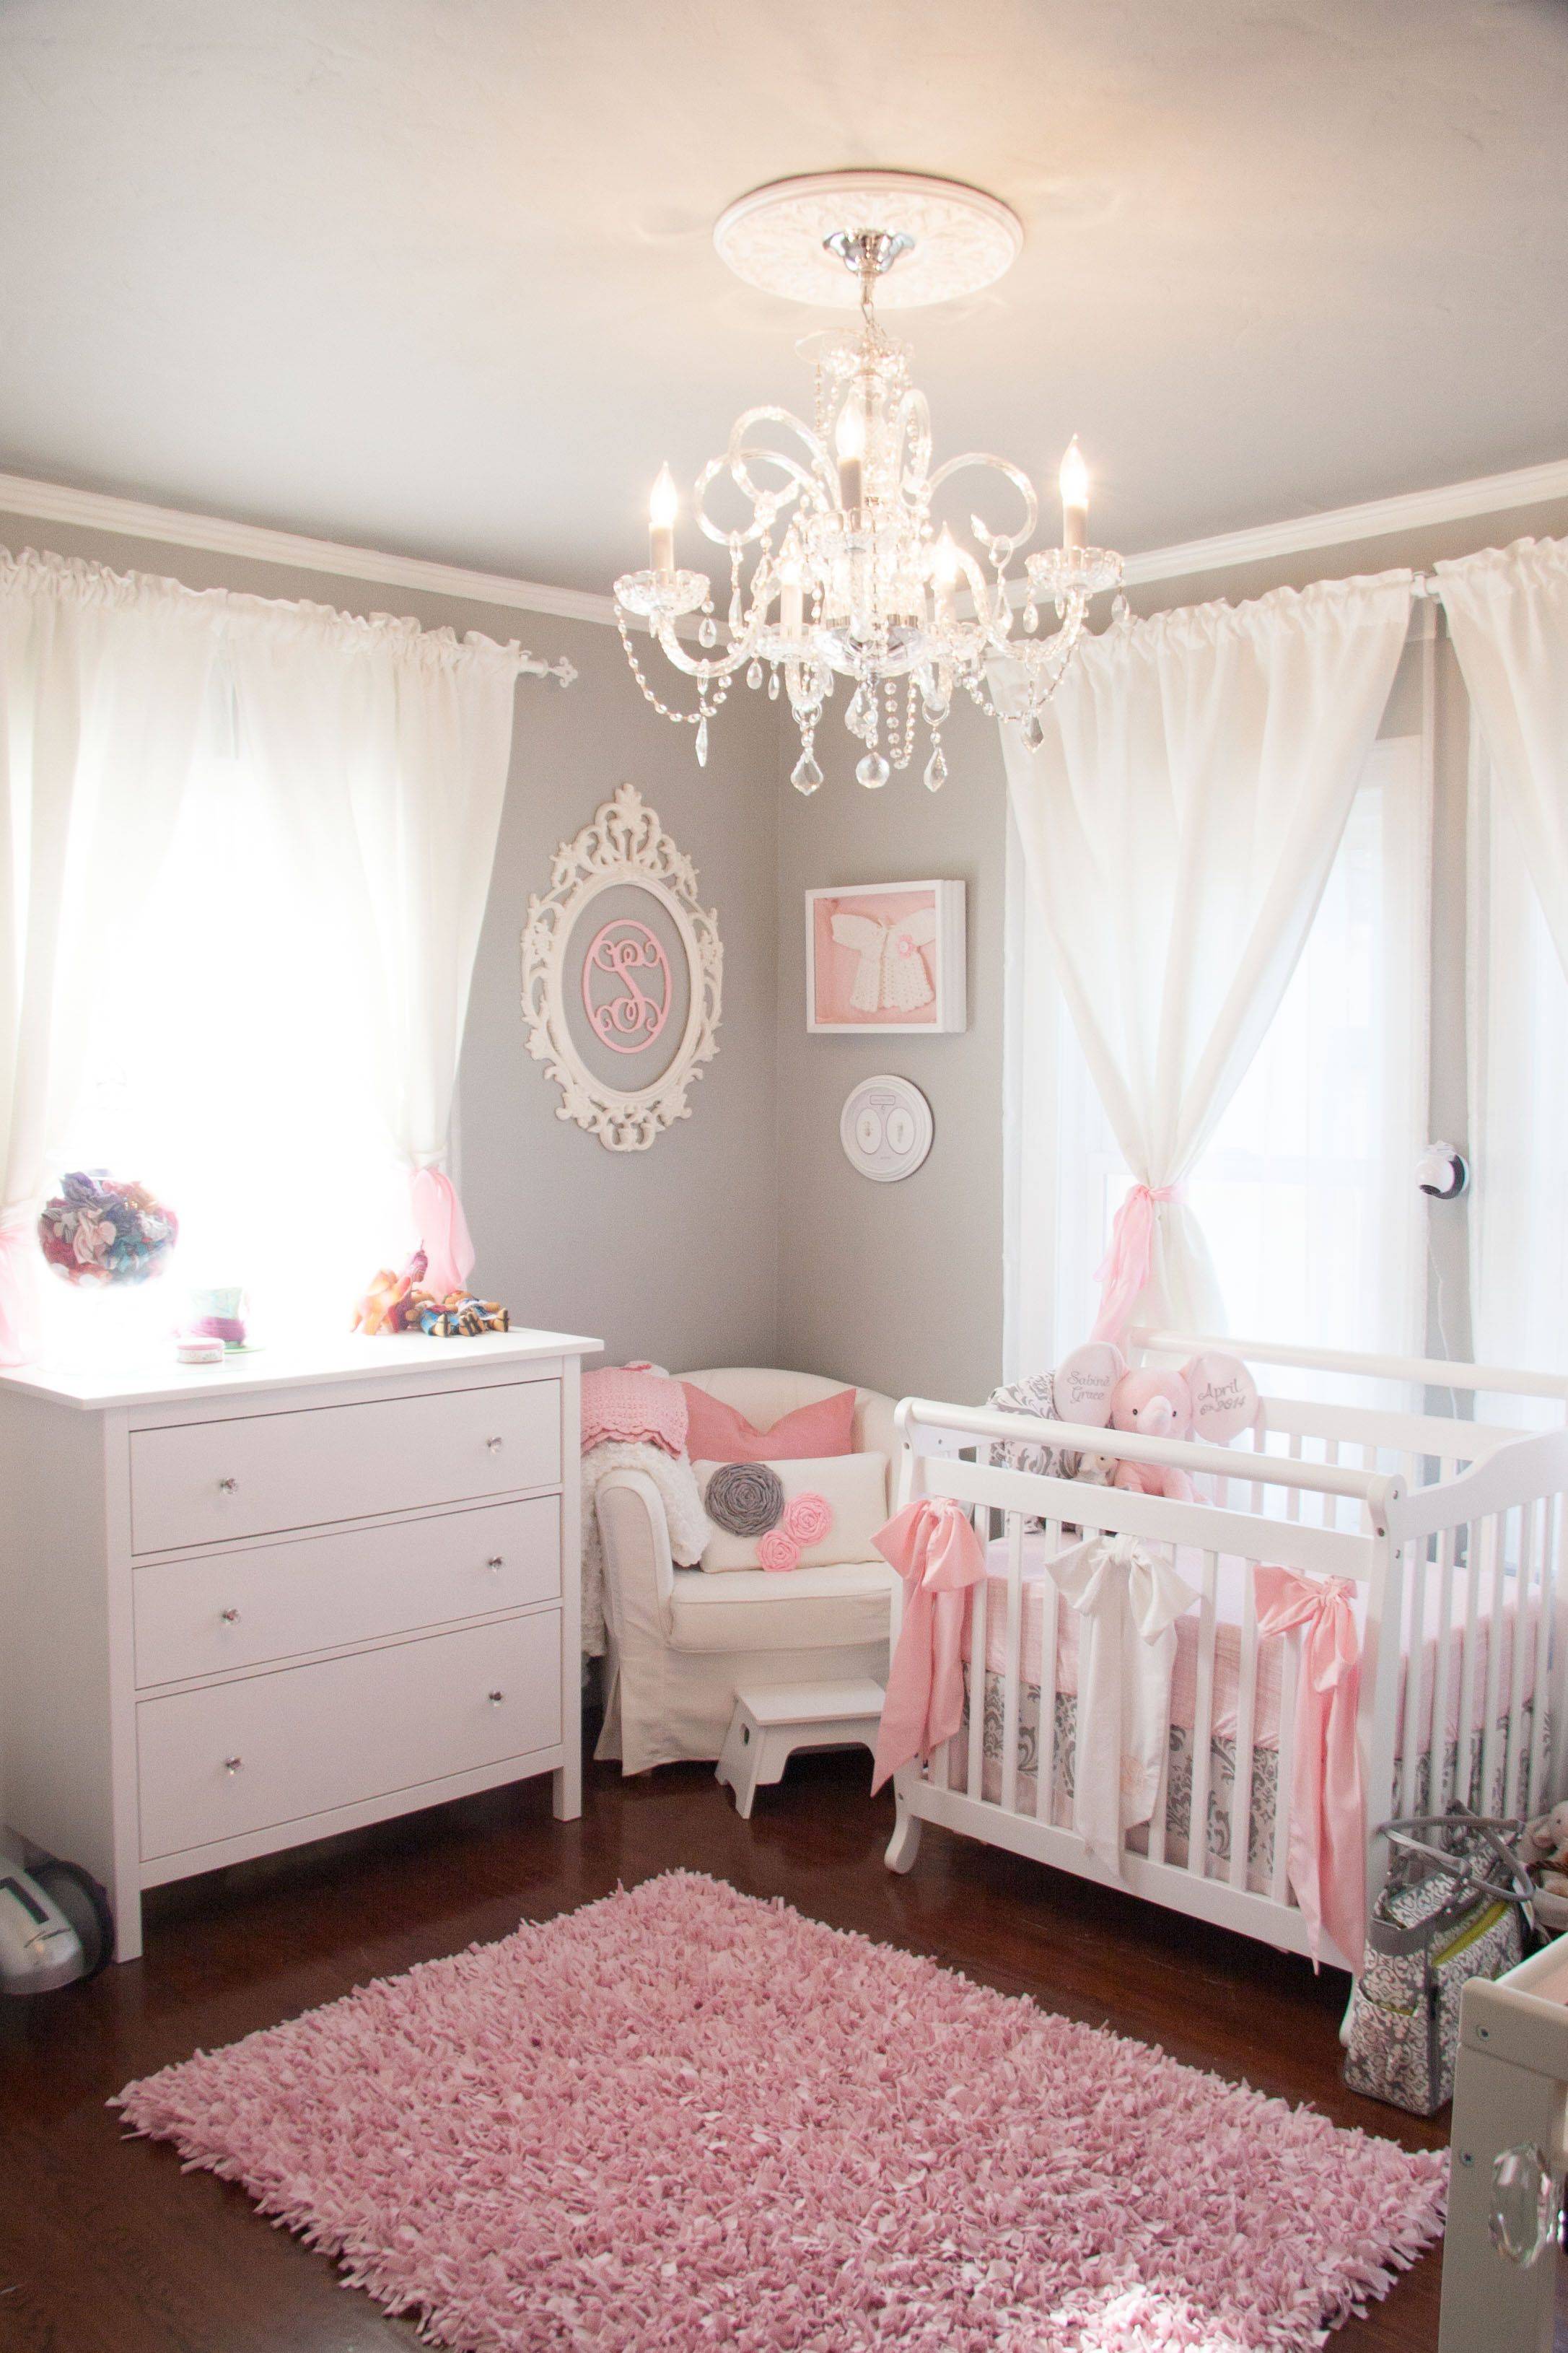 Tiny Budget in a Tiny Room for a Tiny Princess | Baby room ...